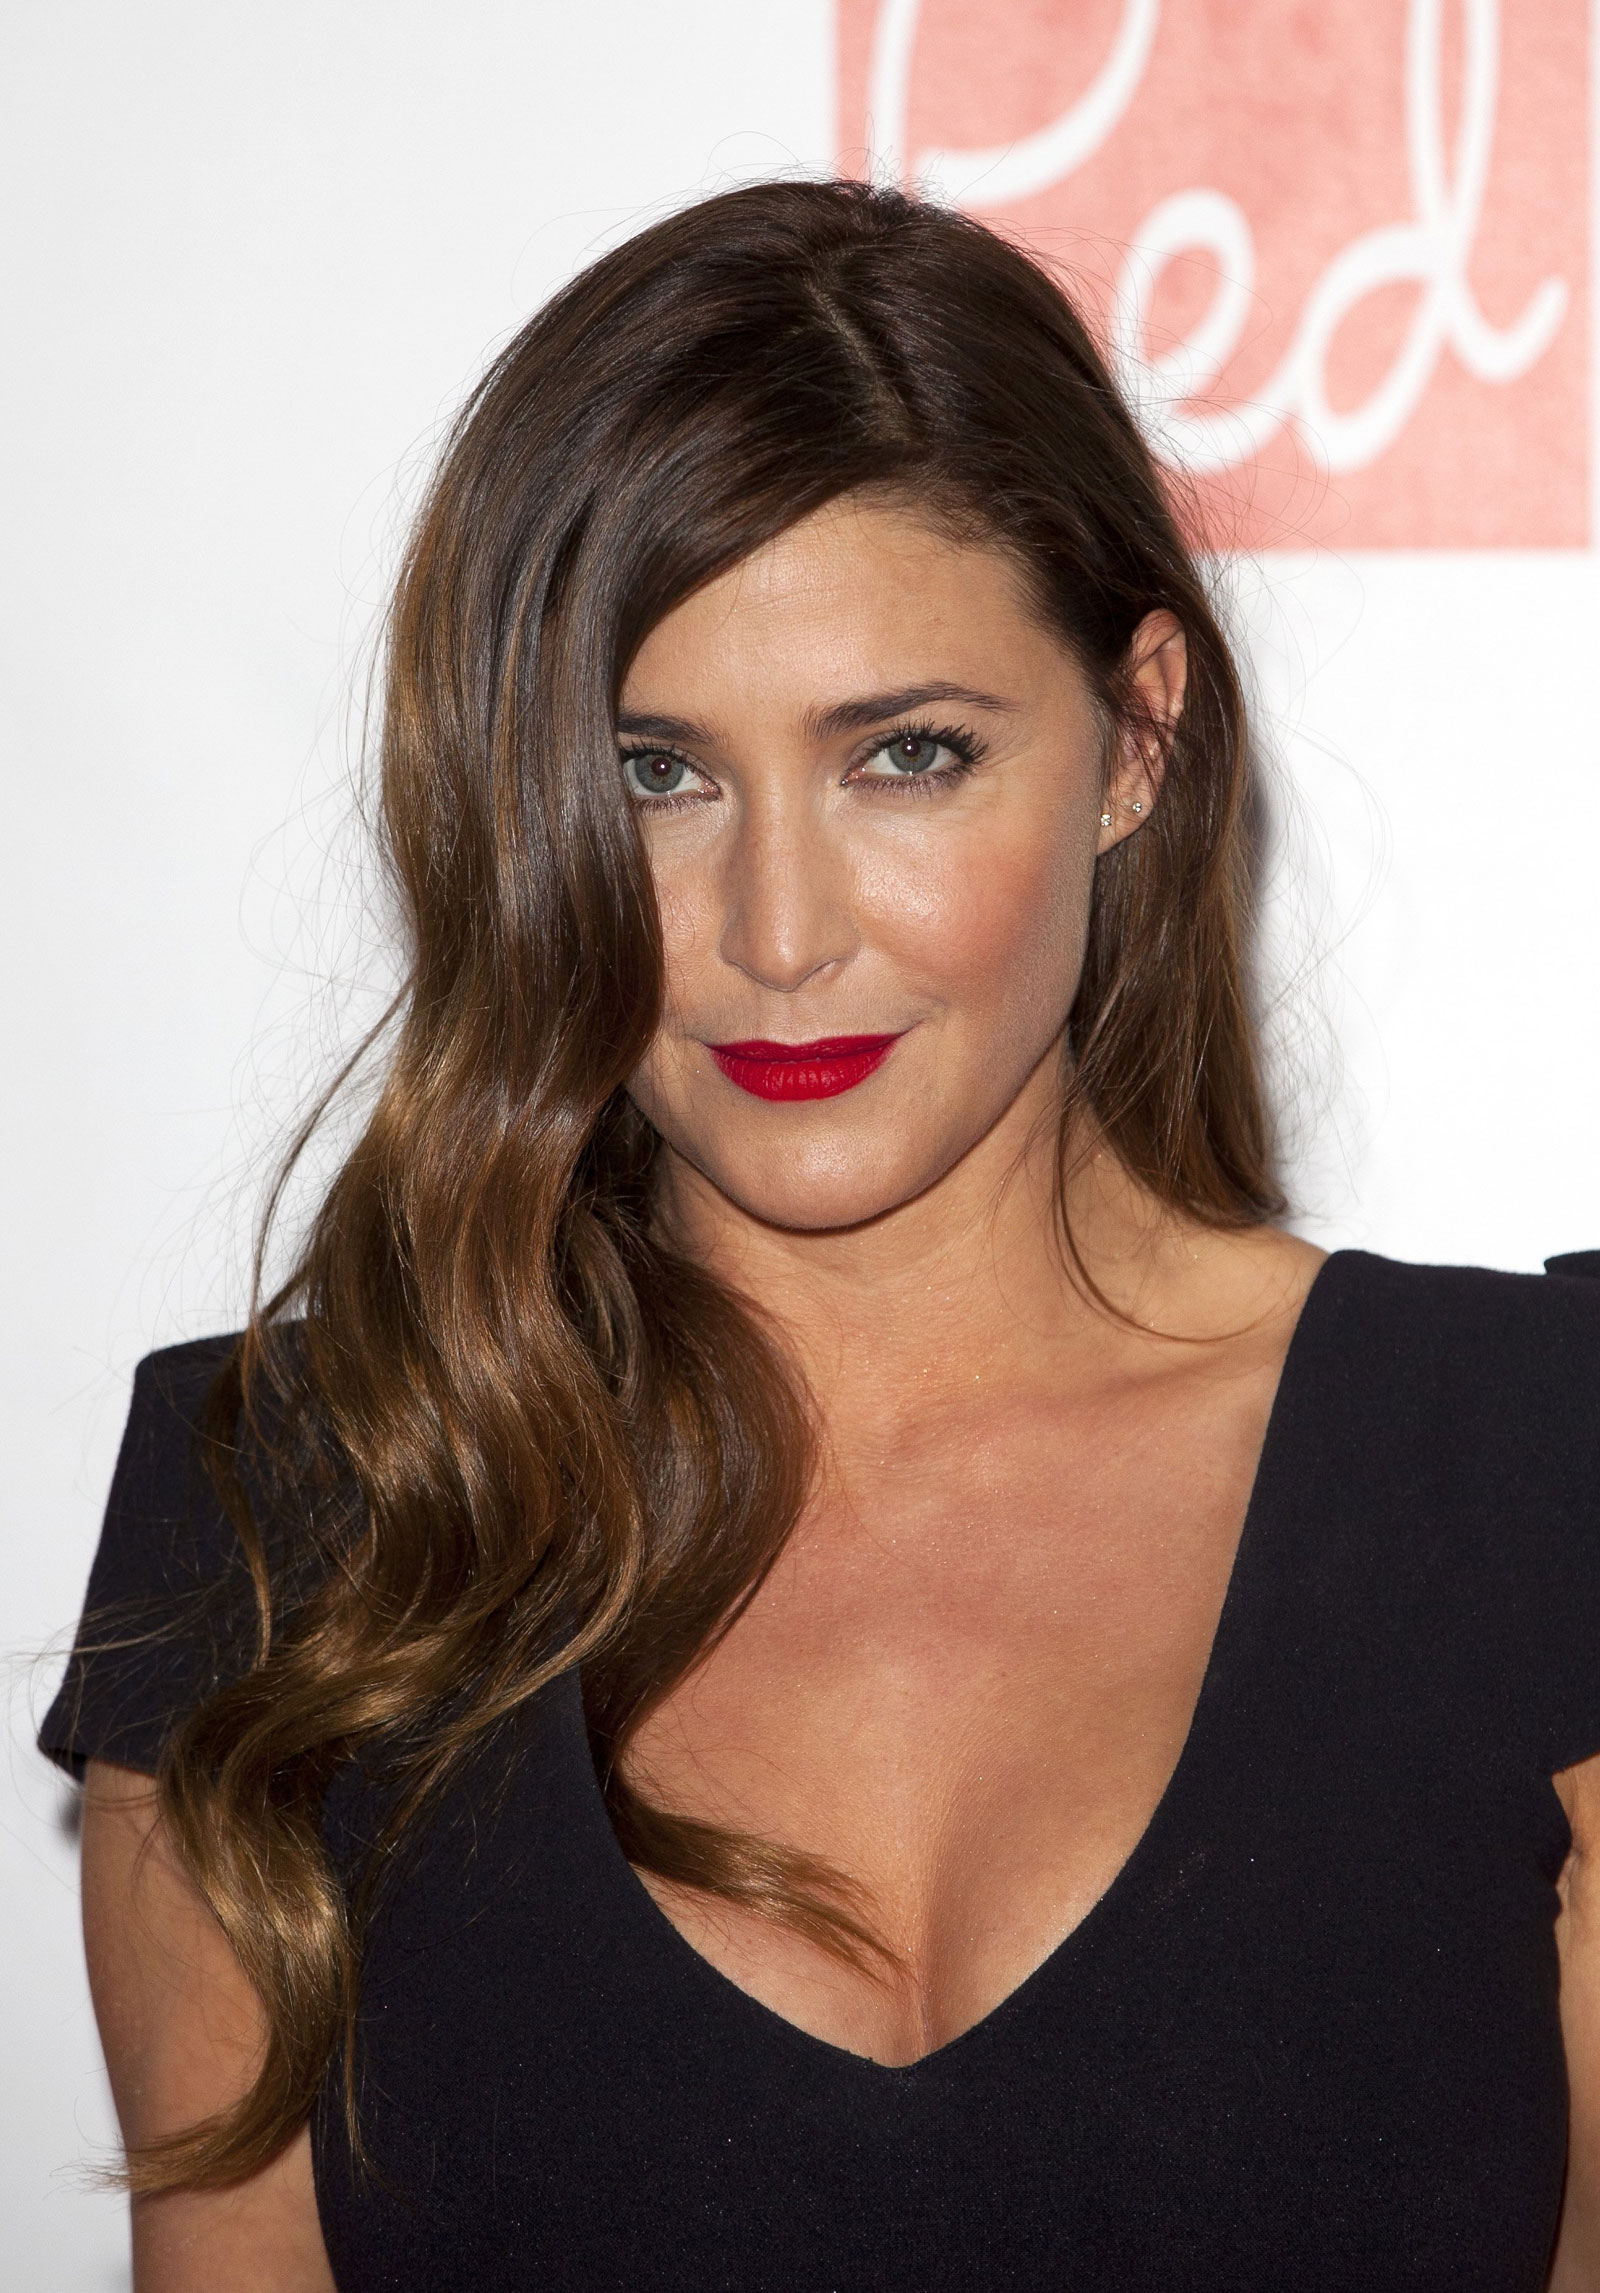 Download this Lisa Snowdon Red Hot Women Awards London picture